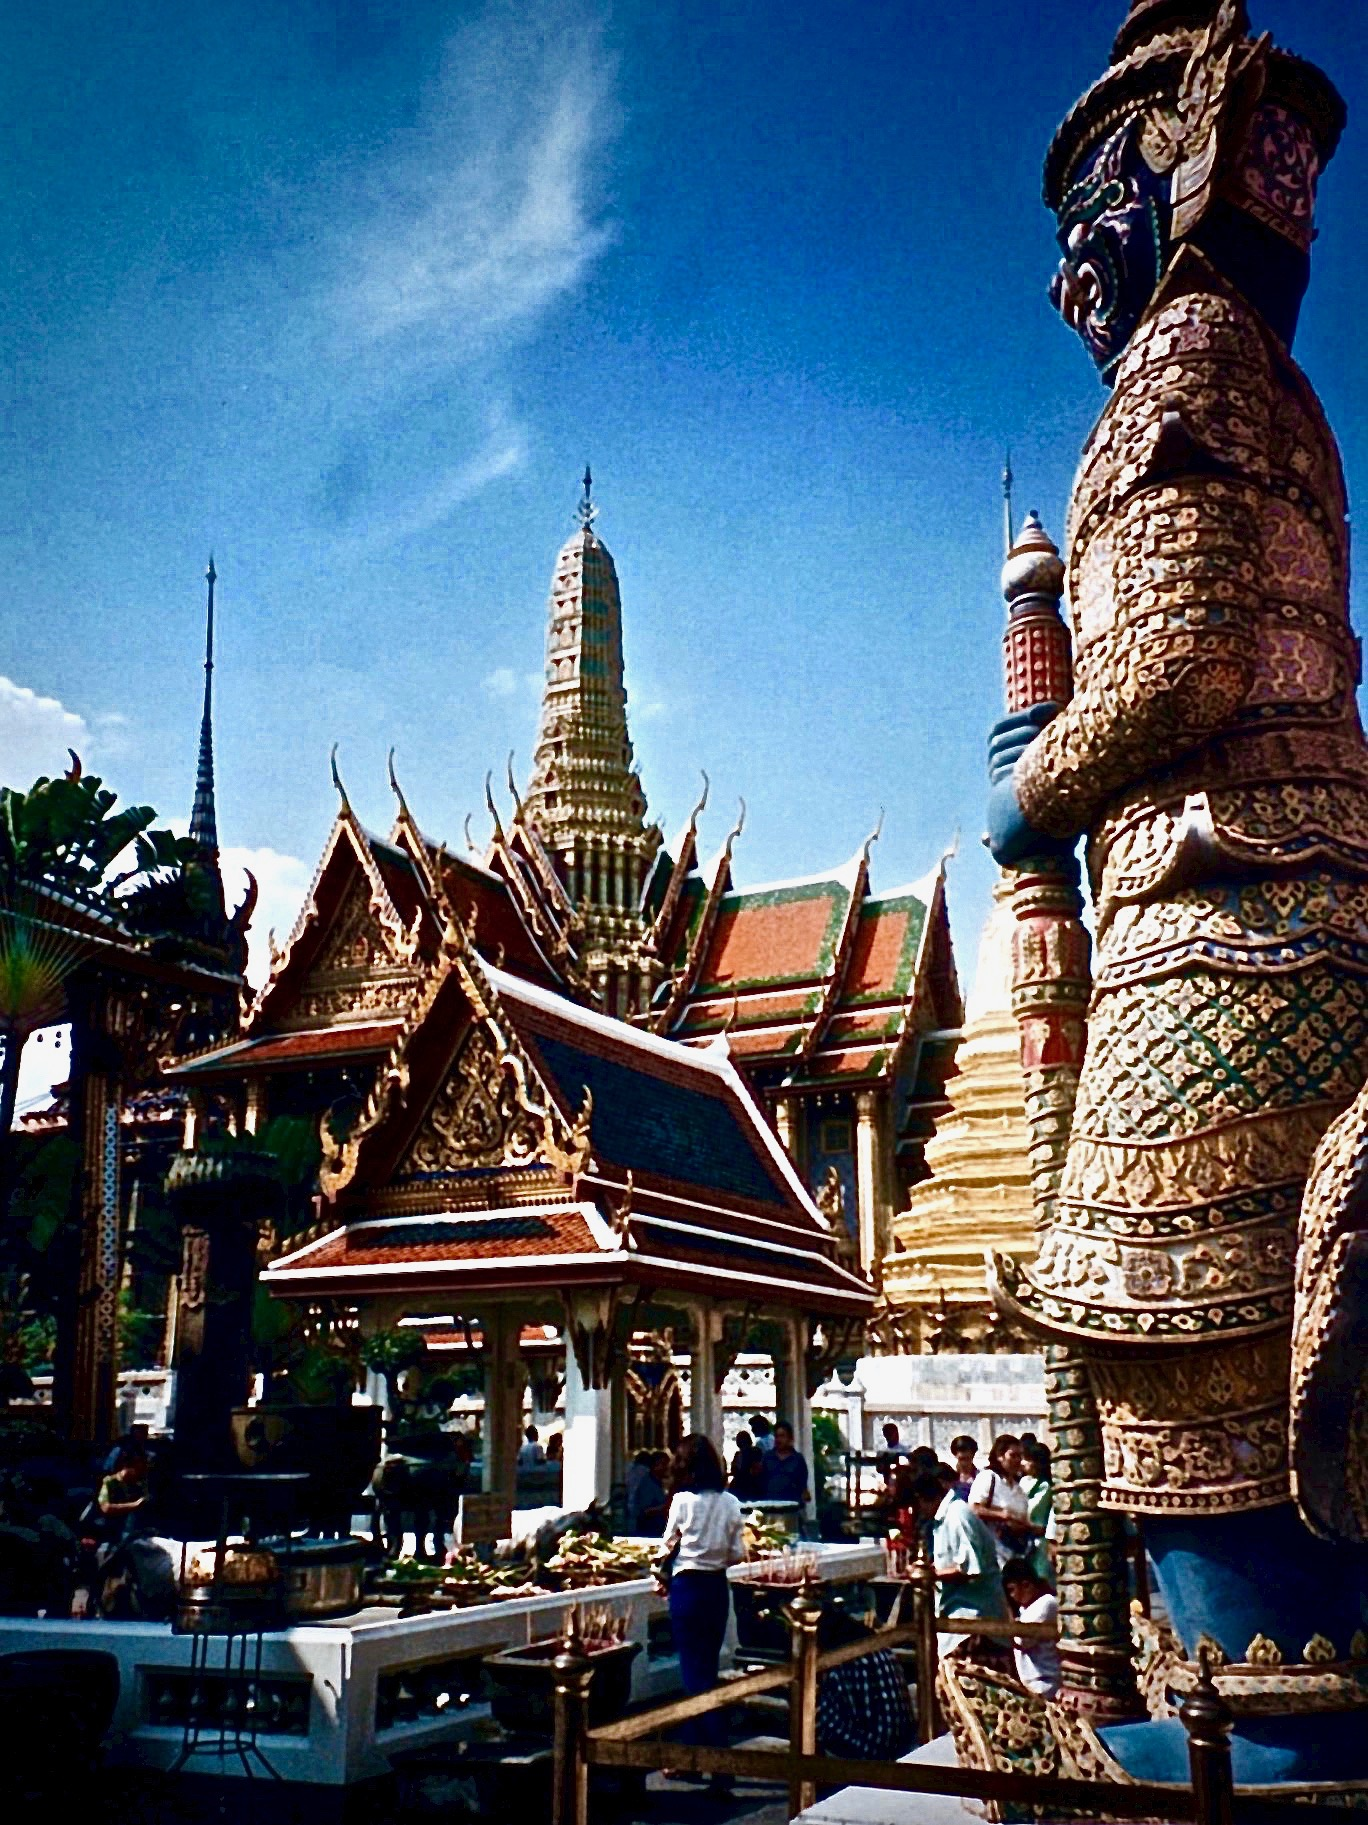 Thai palace gr8 shot.jpg